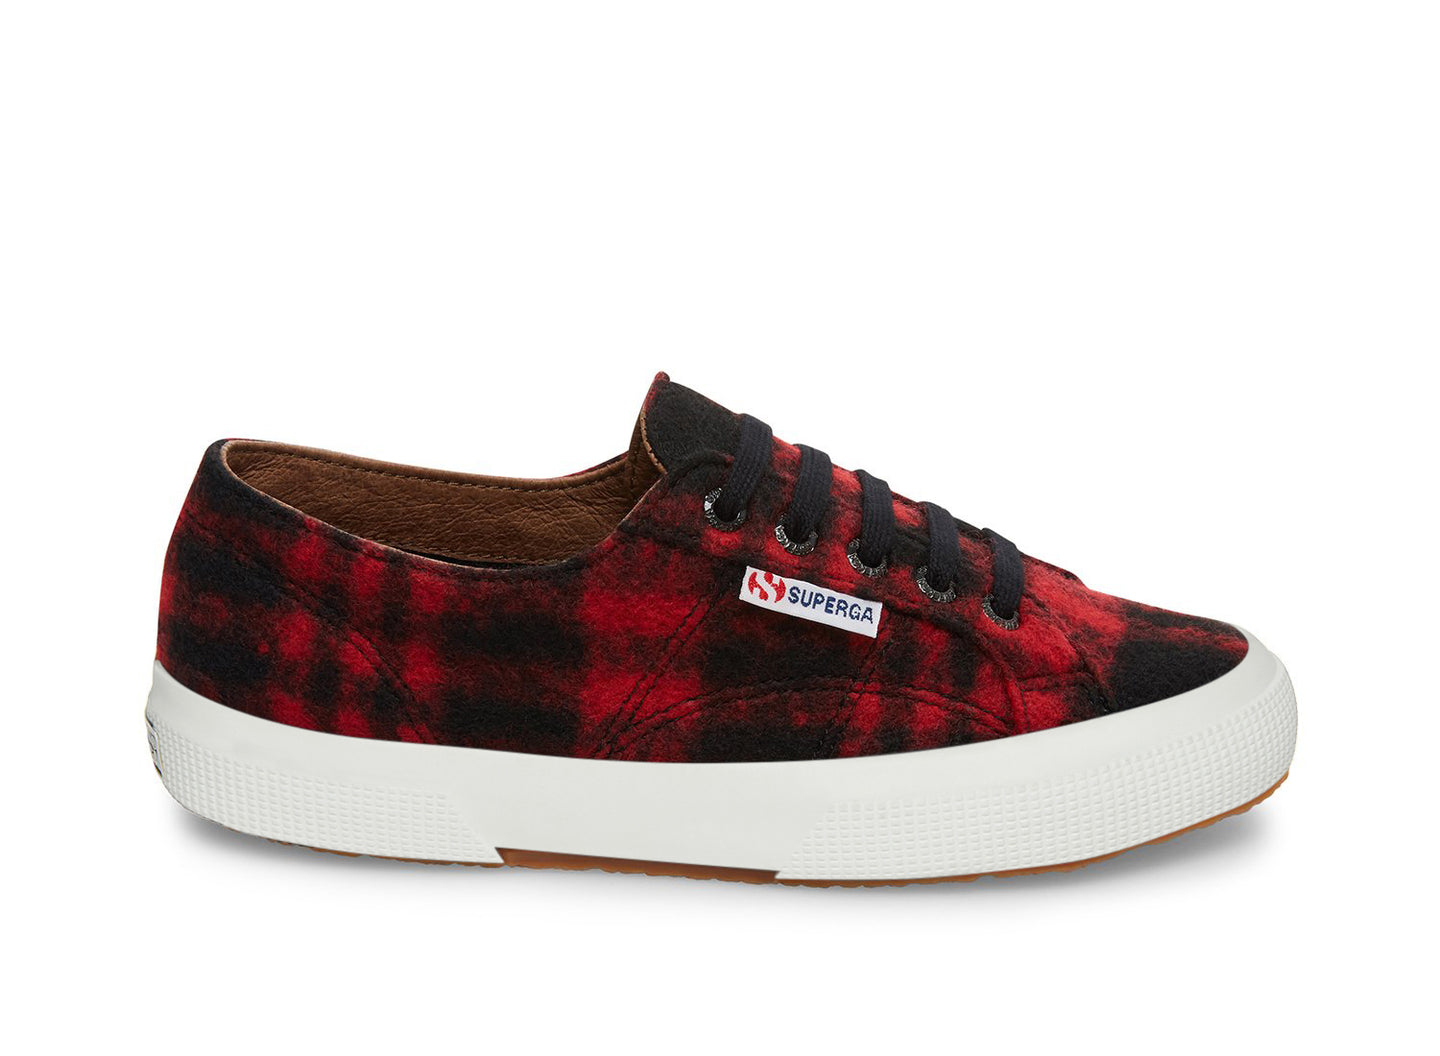 2750-SHEPHERDWOOLU RED-BLACK - Women's